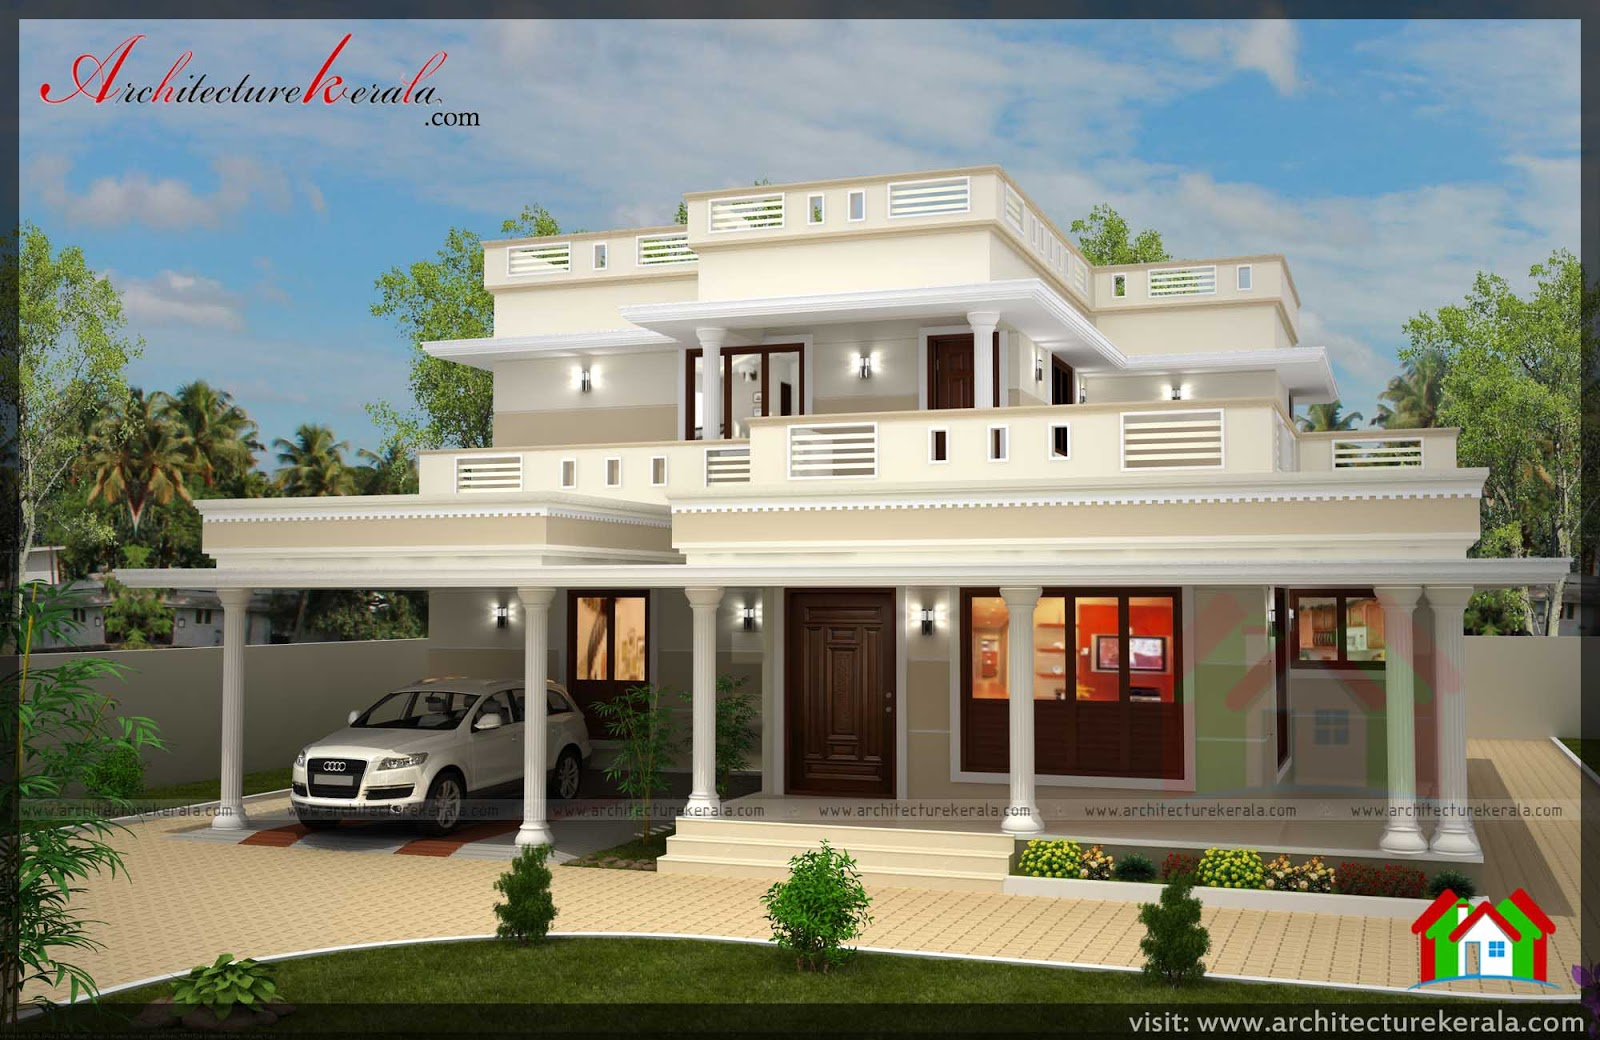 4 bed house plan with pooja room architecture kerala for Kerala style 2 bedroom house plans